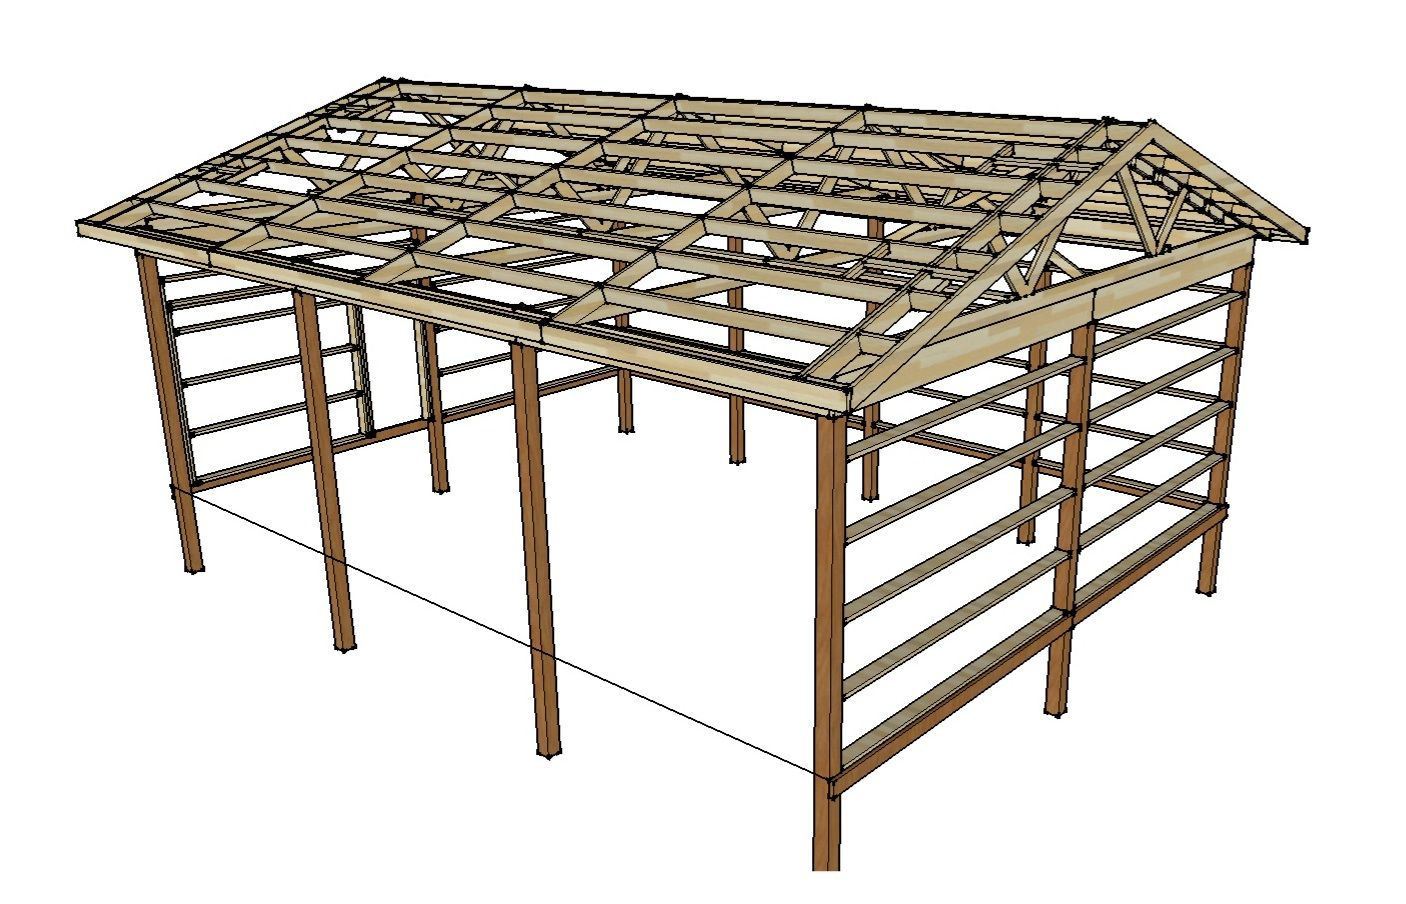 Pole barn plans and materials redneck diy outdoor for Barn construction designs